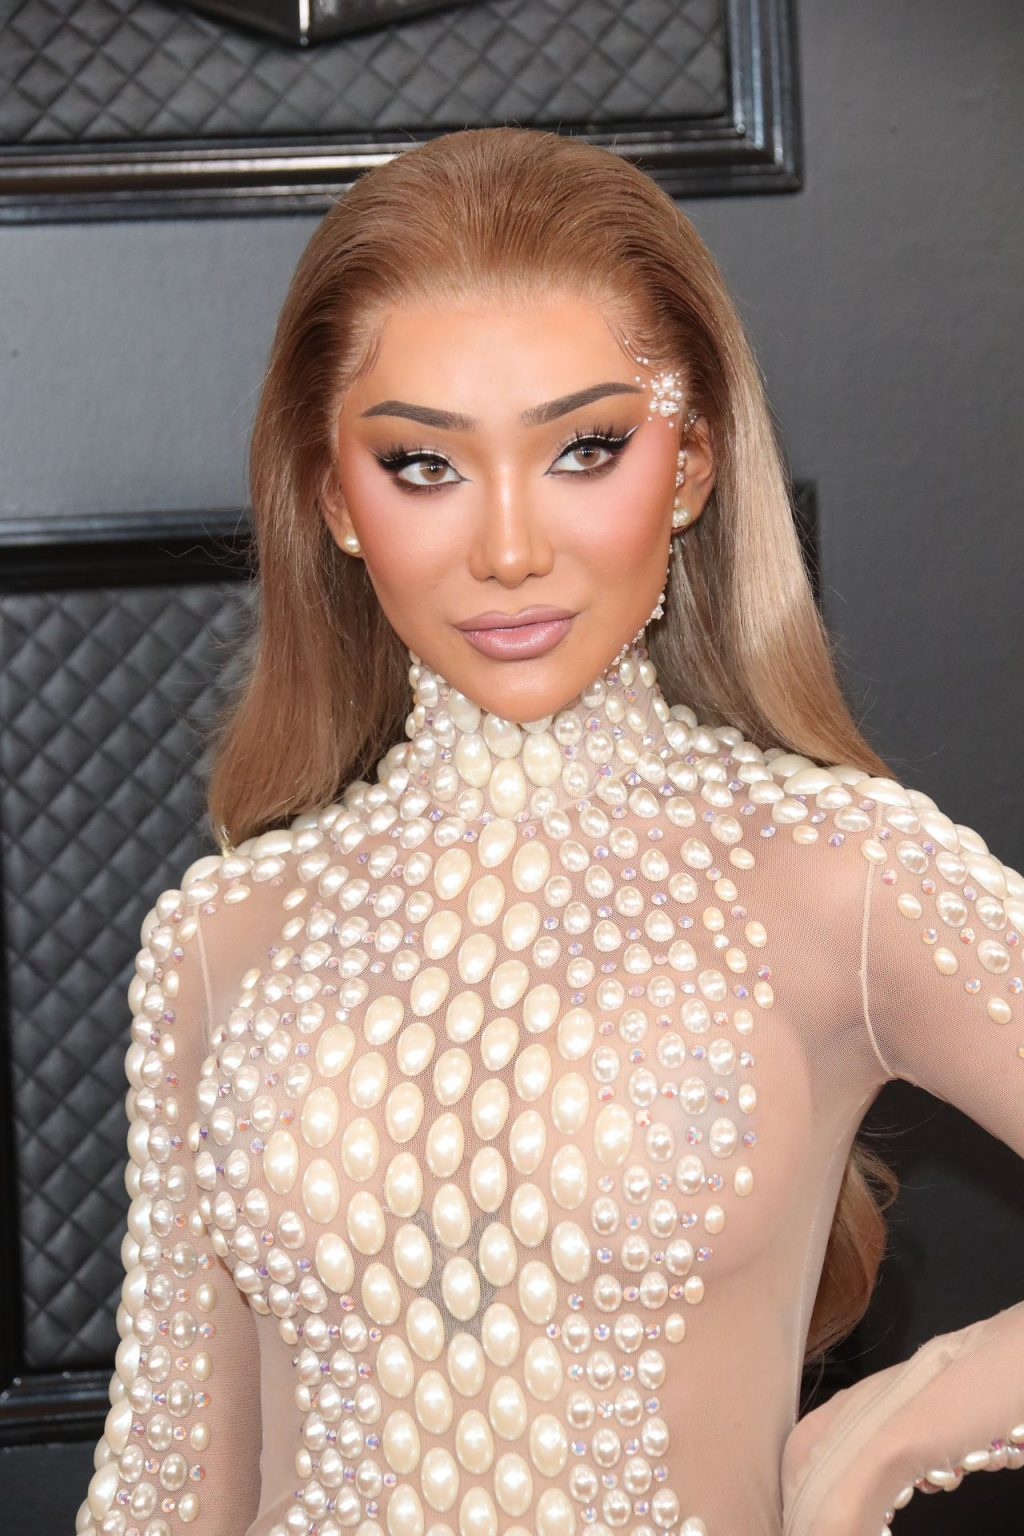 Nikita Dragun Rocks Sheer Dress on the 62nd annual GRAMMY Awards Red Carpet (4 Photos + Video)